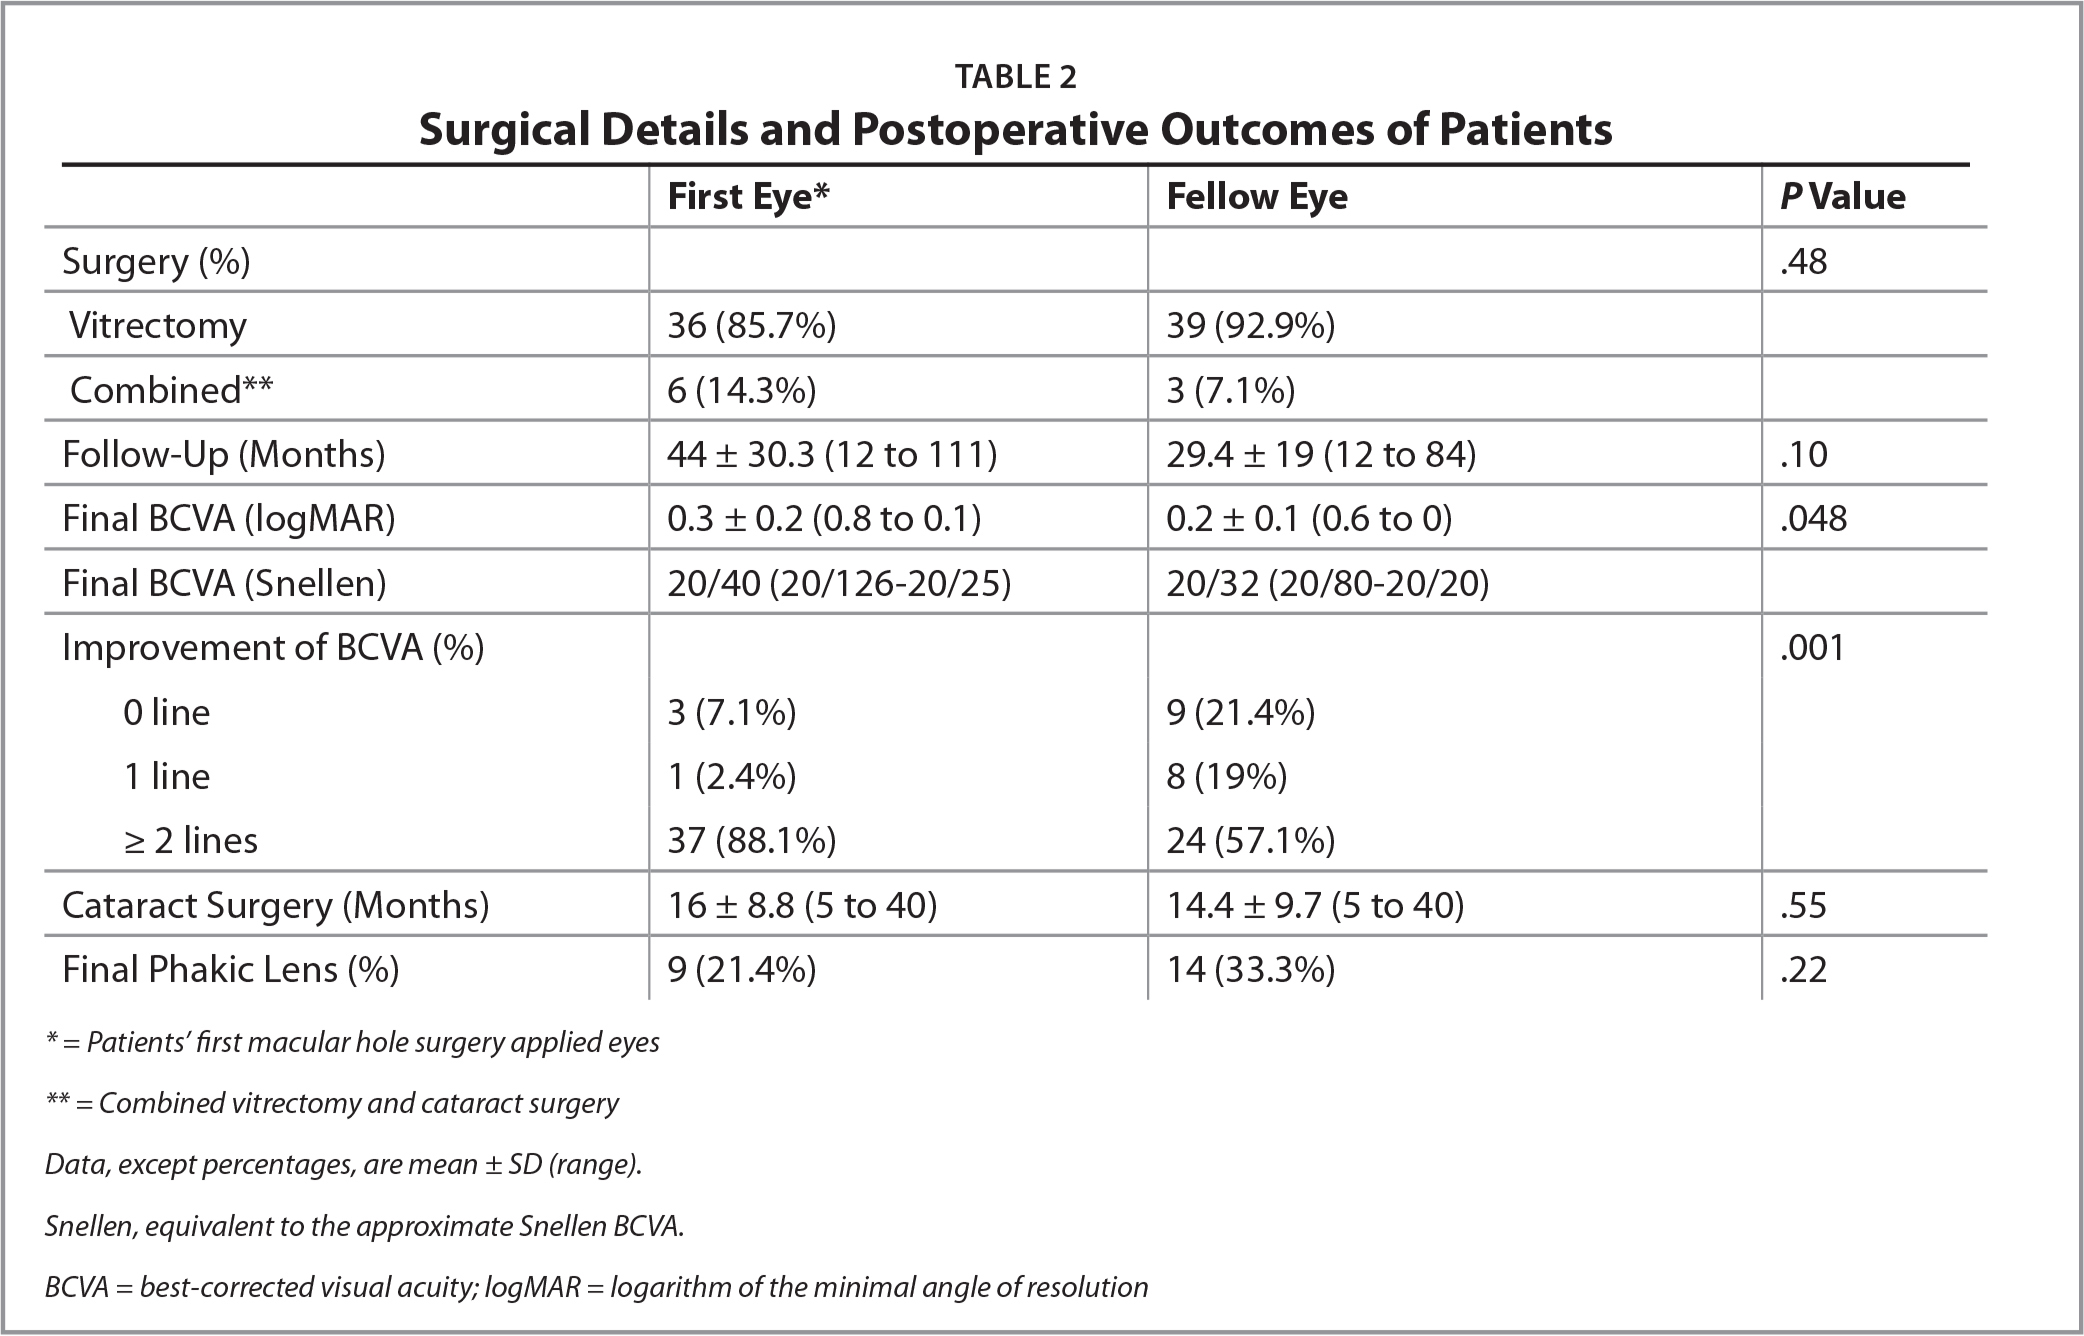 Surgical Details and Postoperative Outcomes of Patients